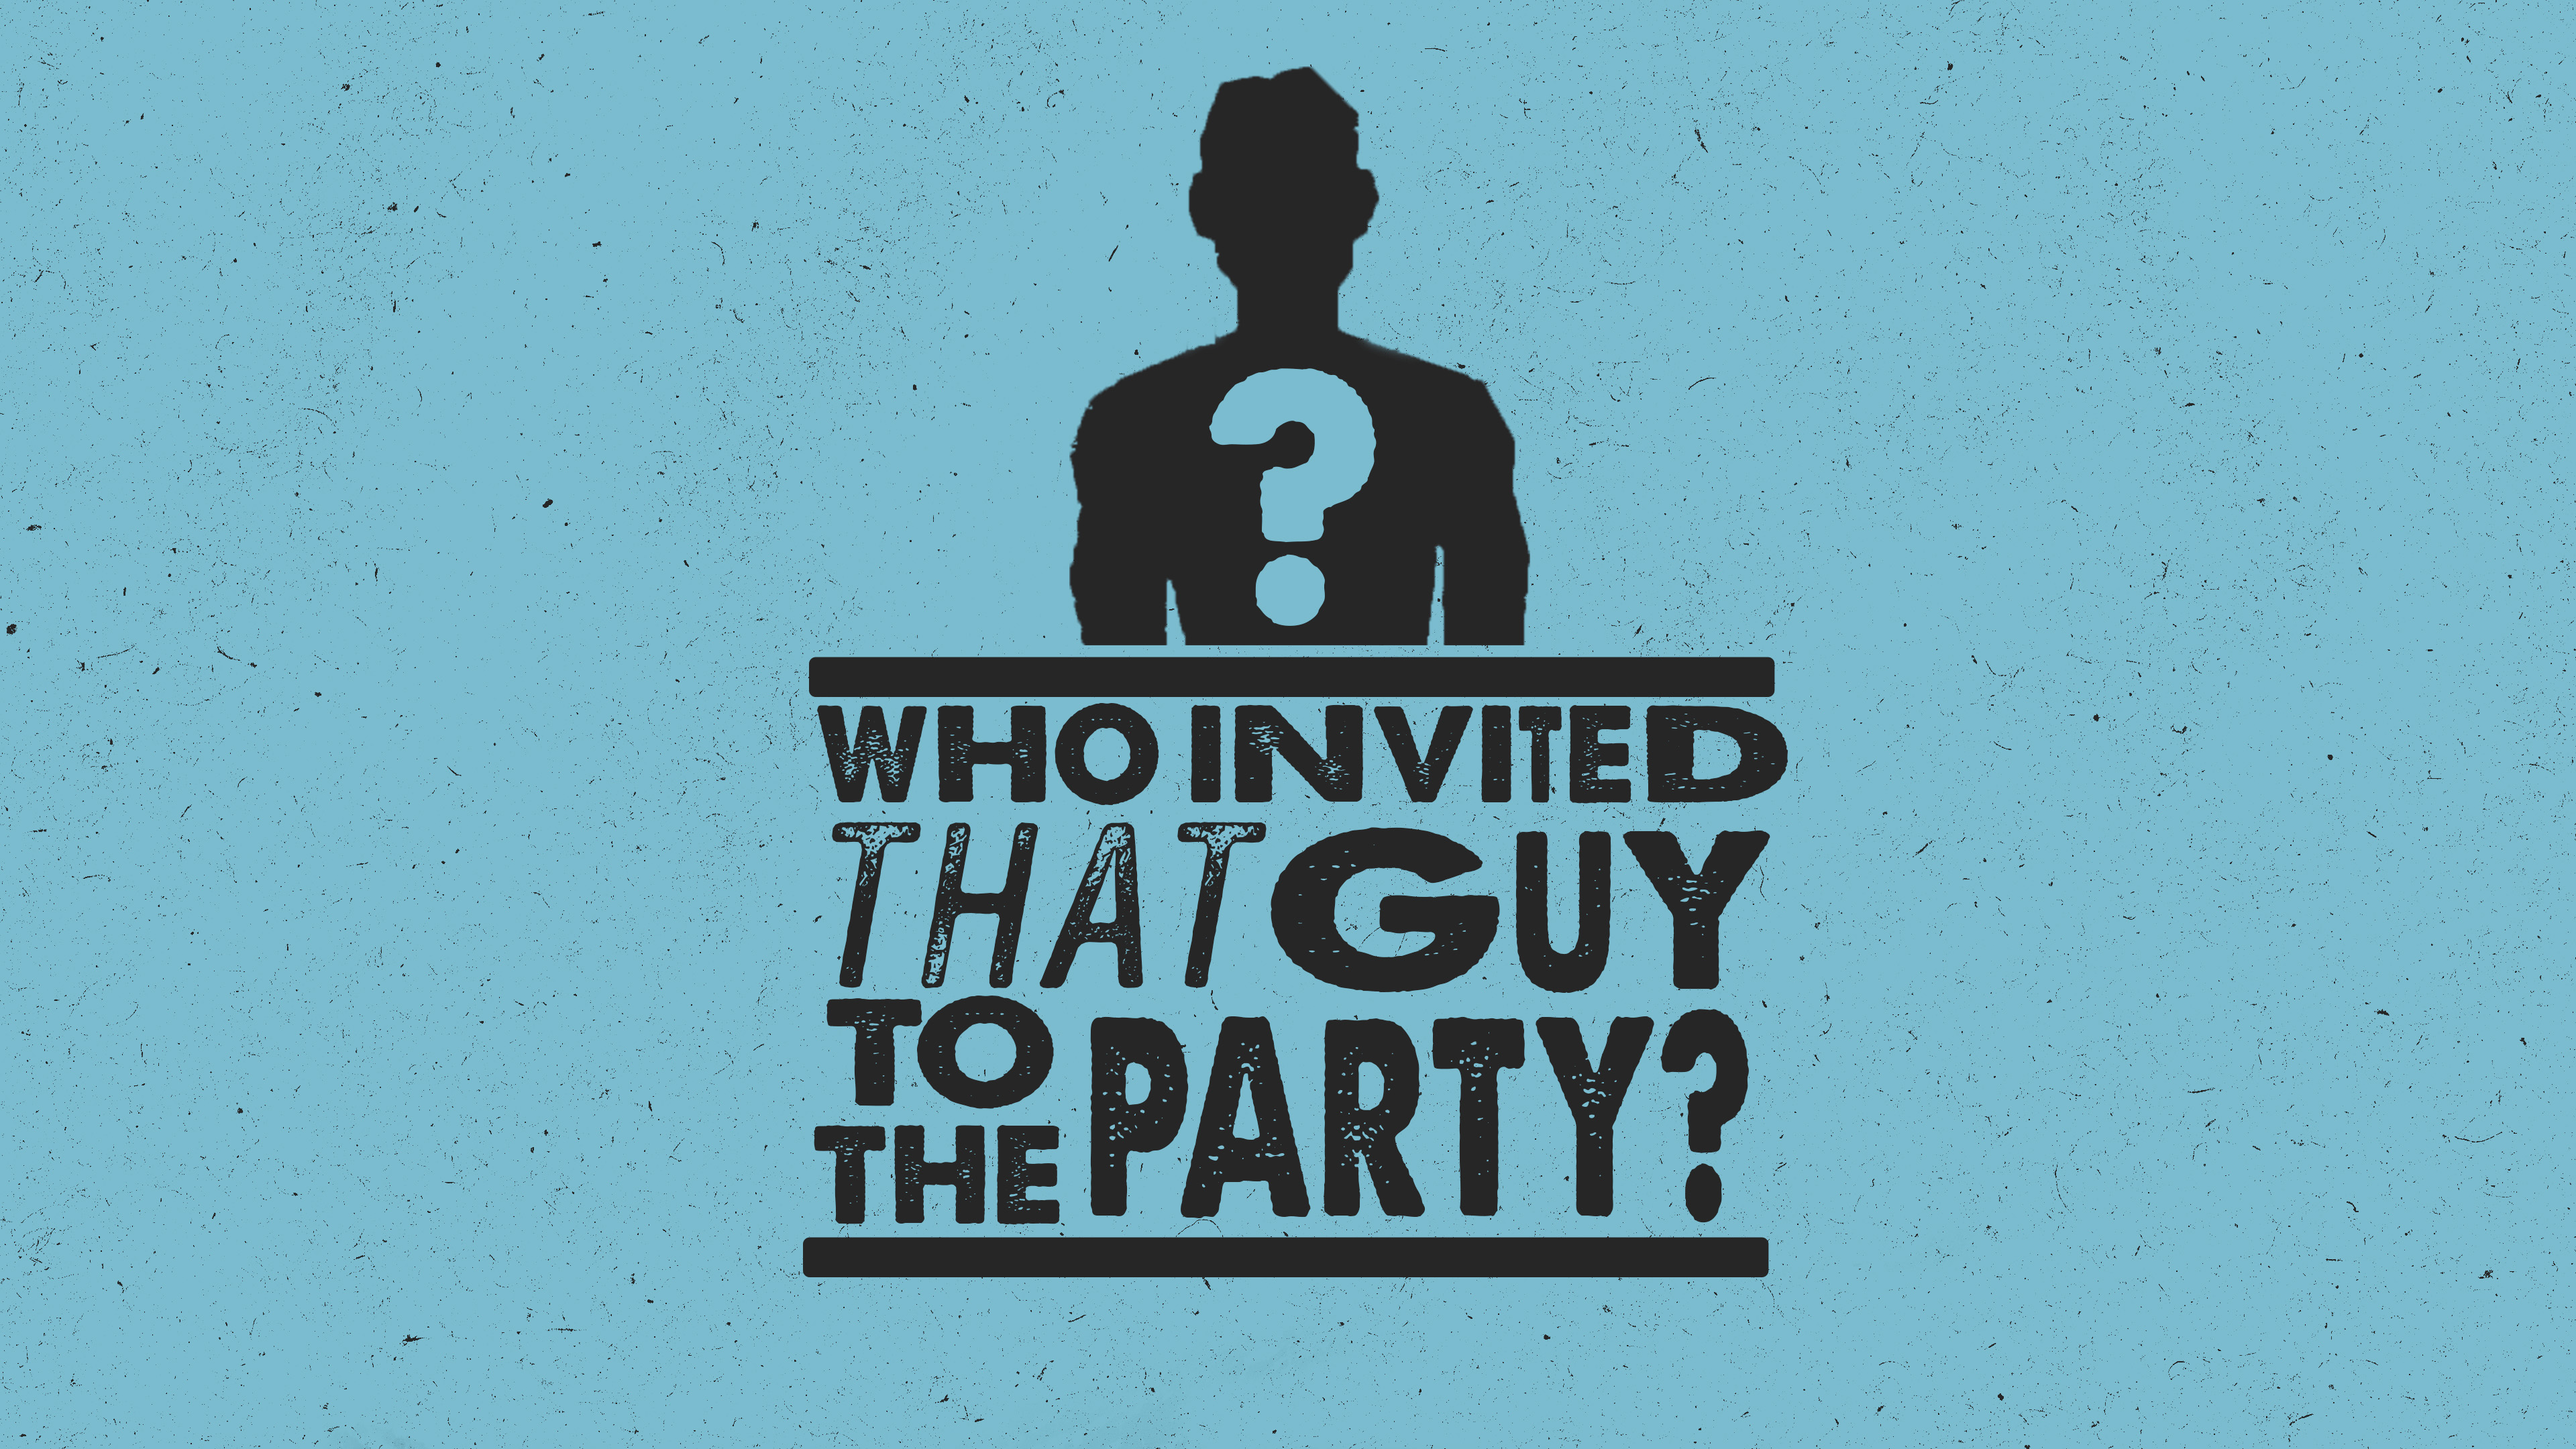 Who Invited That Guy to the Party?